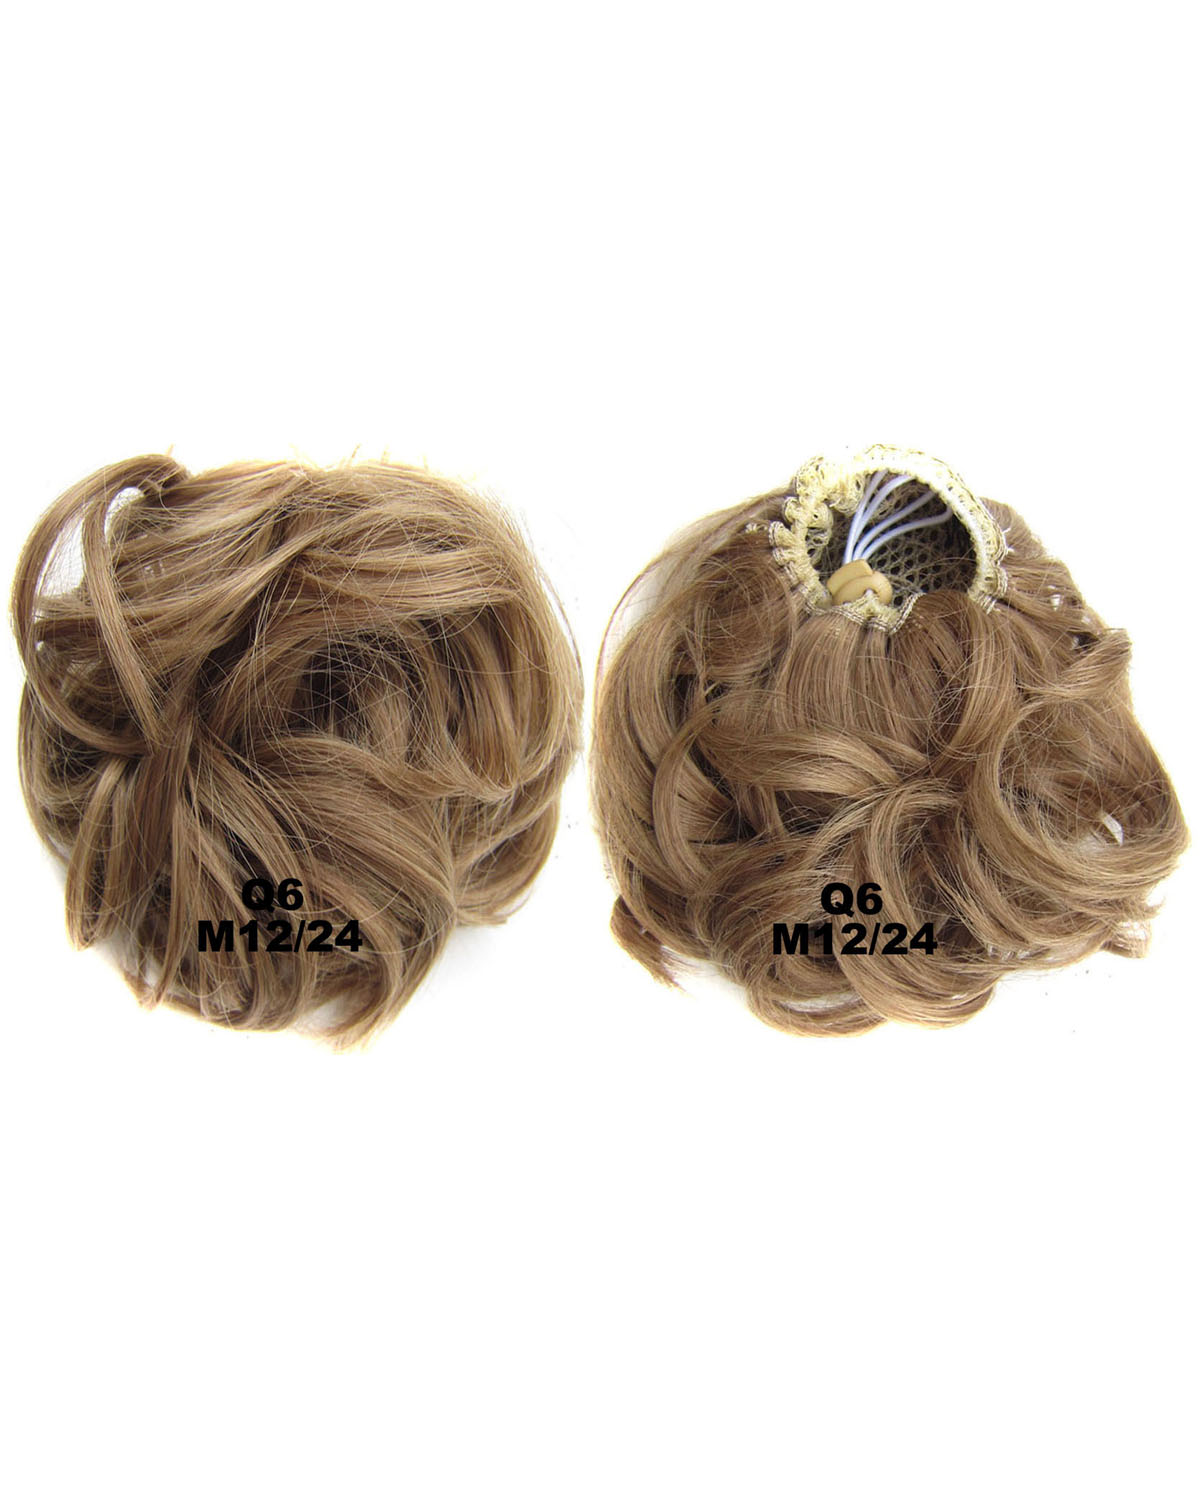 Ladies Newly Great Quality Curly and Short Hair Buns Drawstring Synthetic Hair Extension Bride Scrunchies M12/24